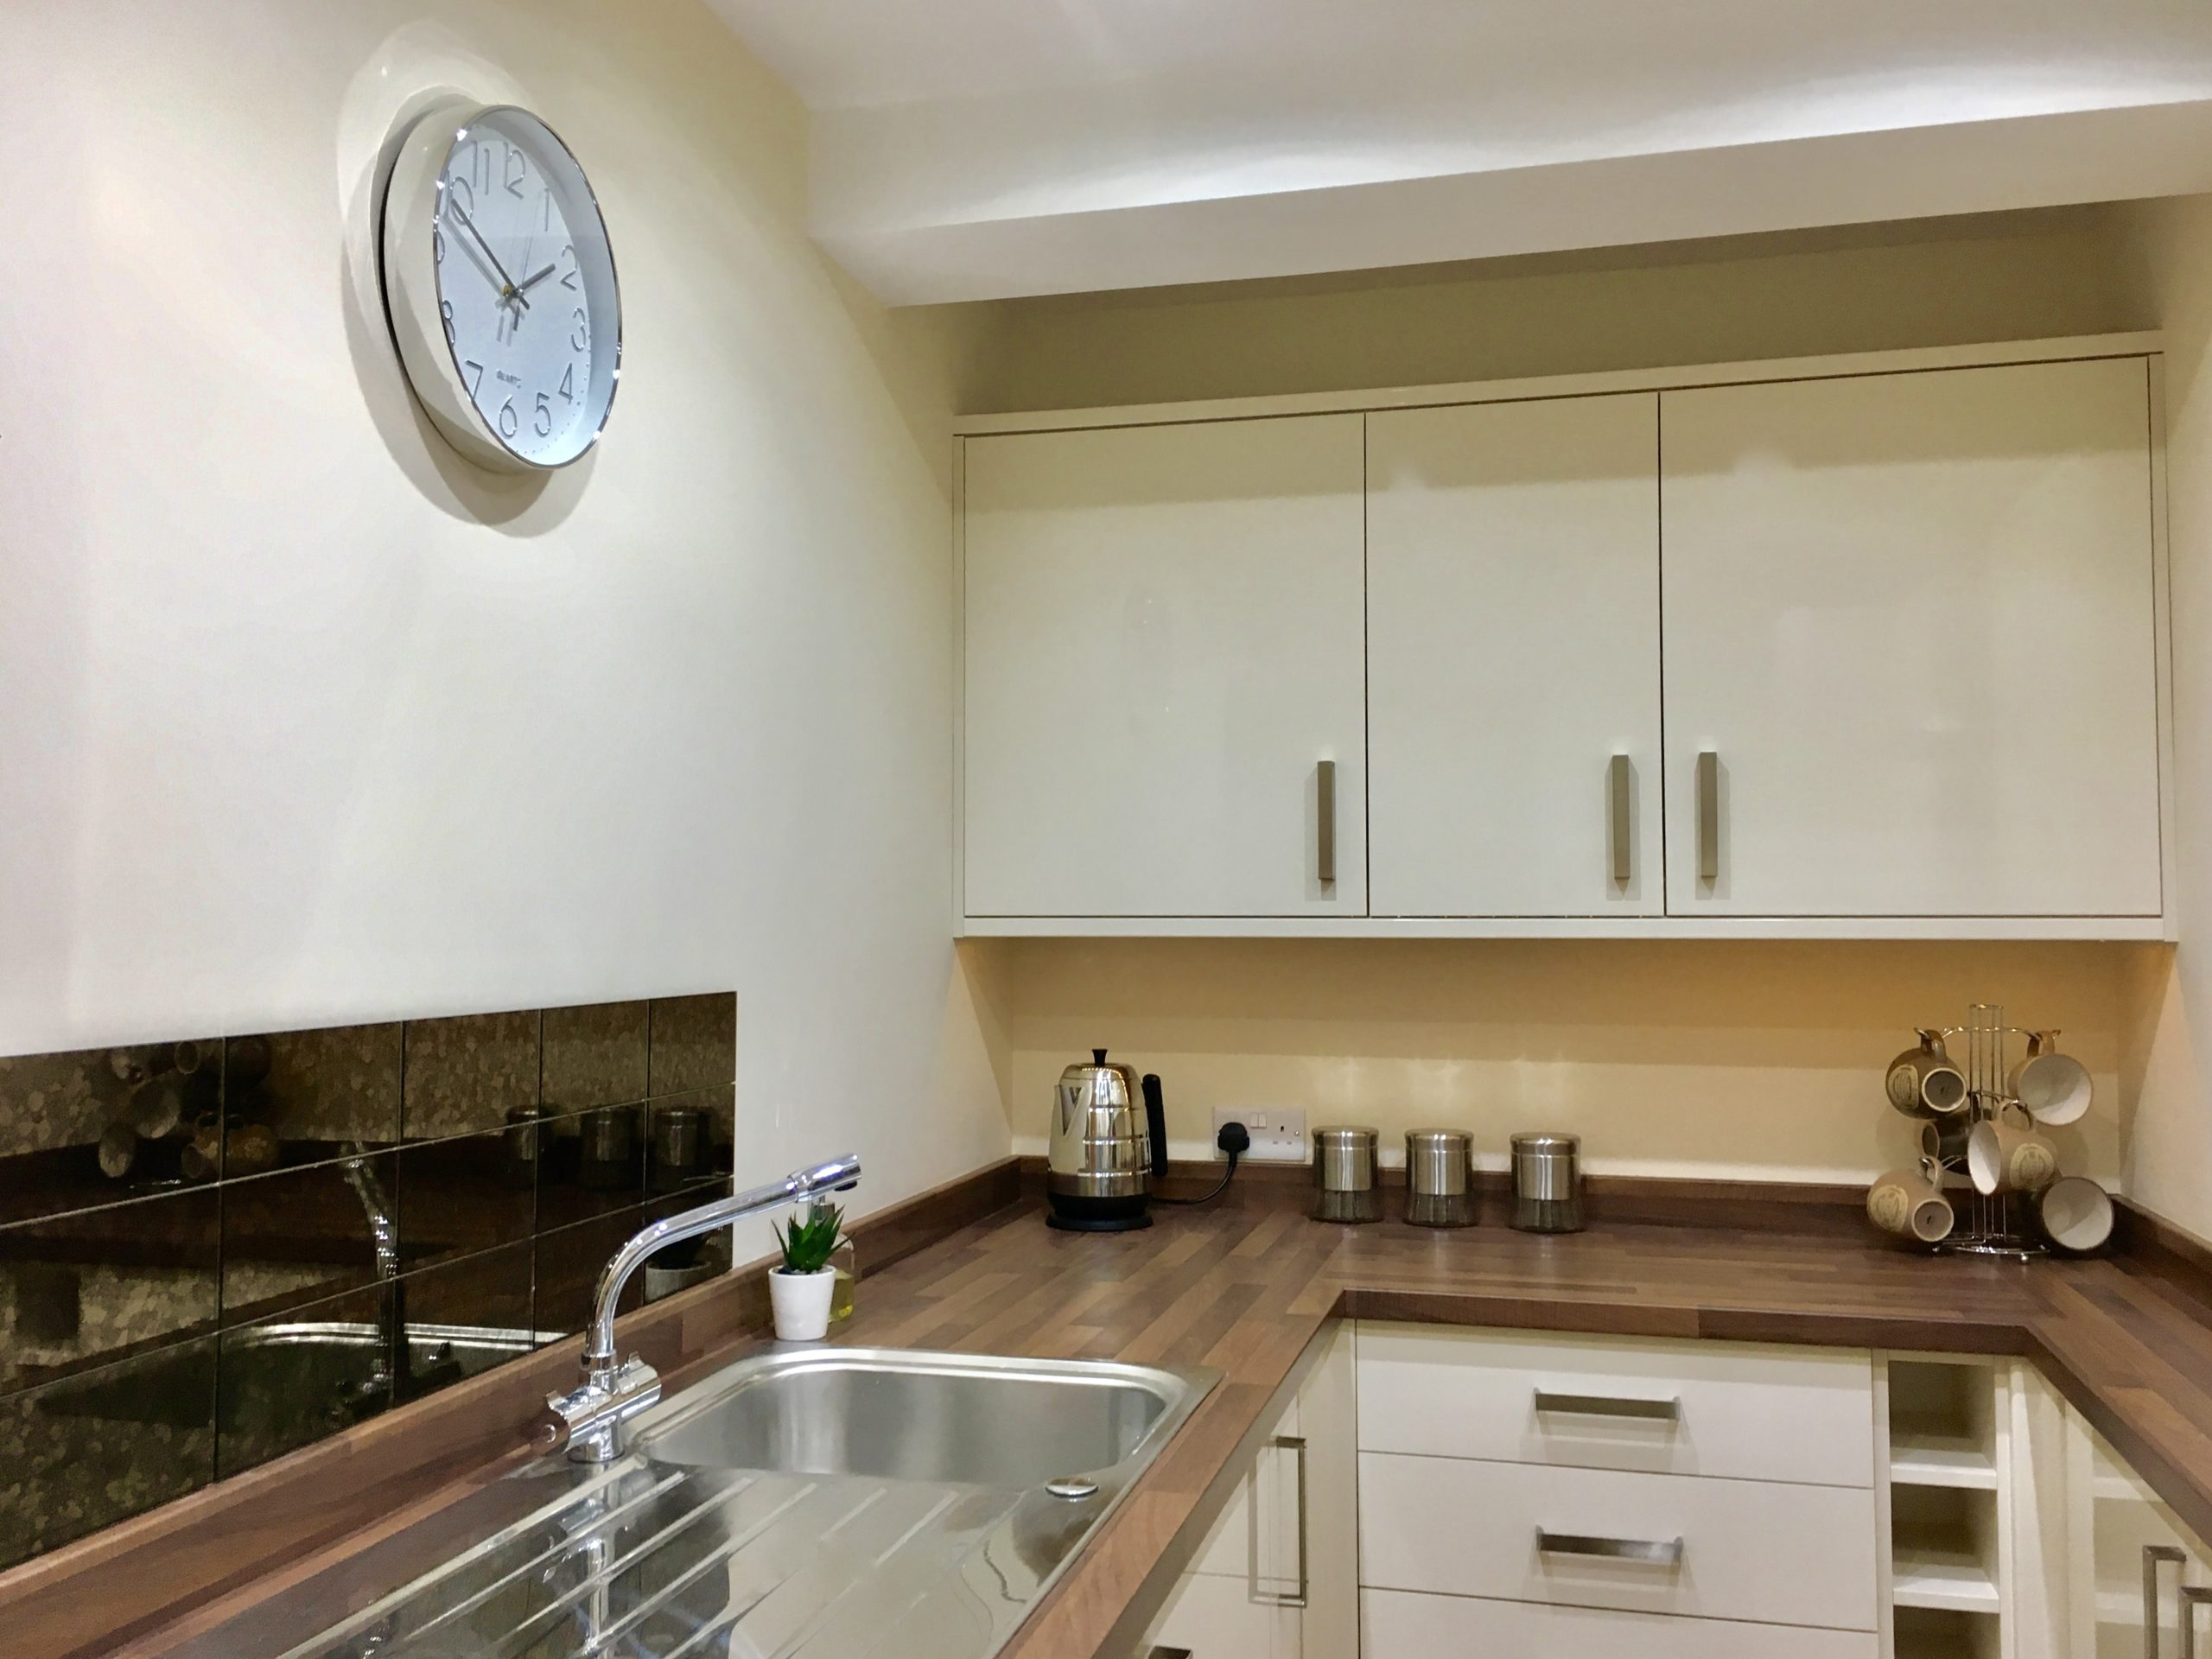 Kitchen in show home at John Dalton Building apartments in Cockermouth